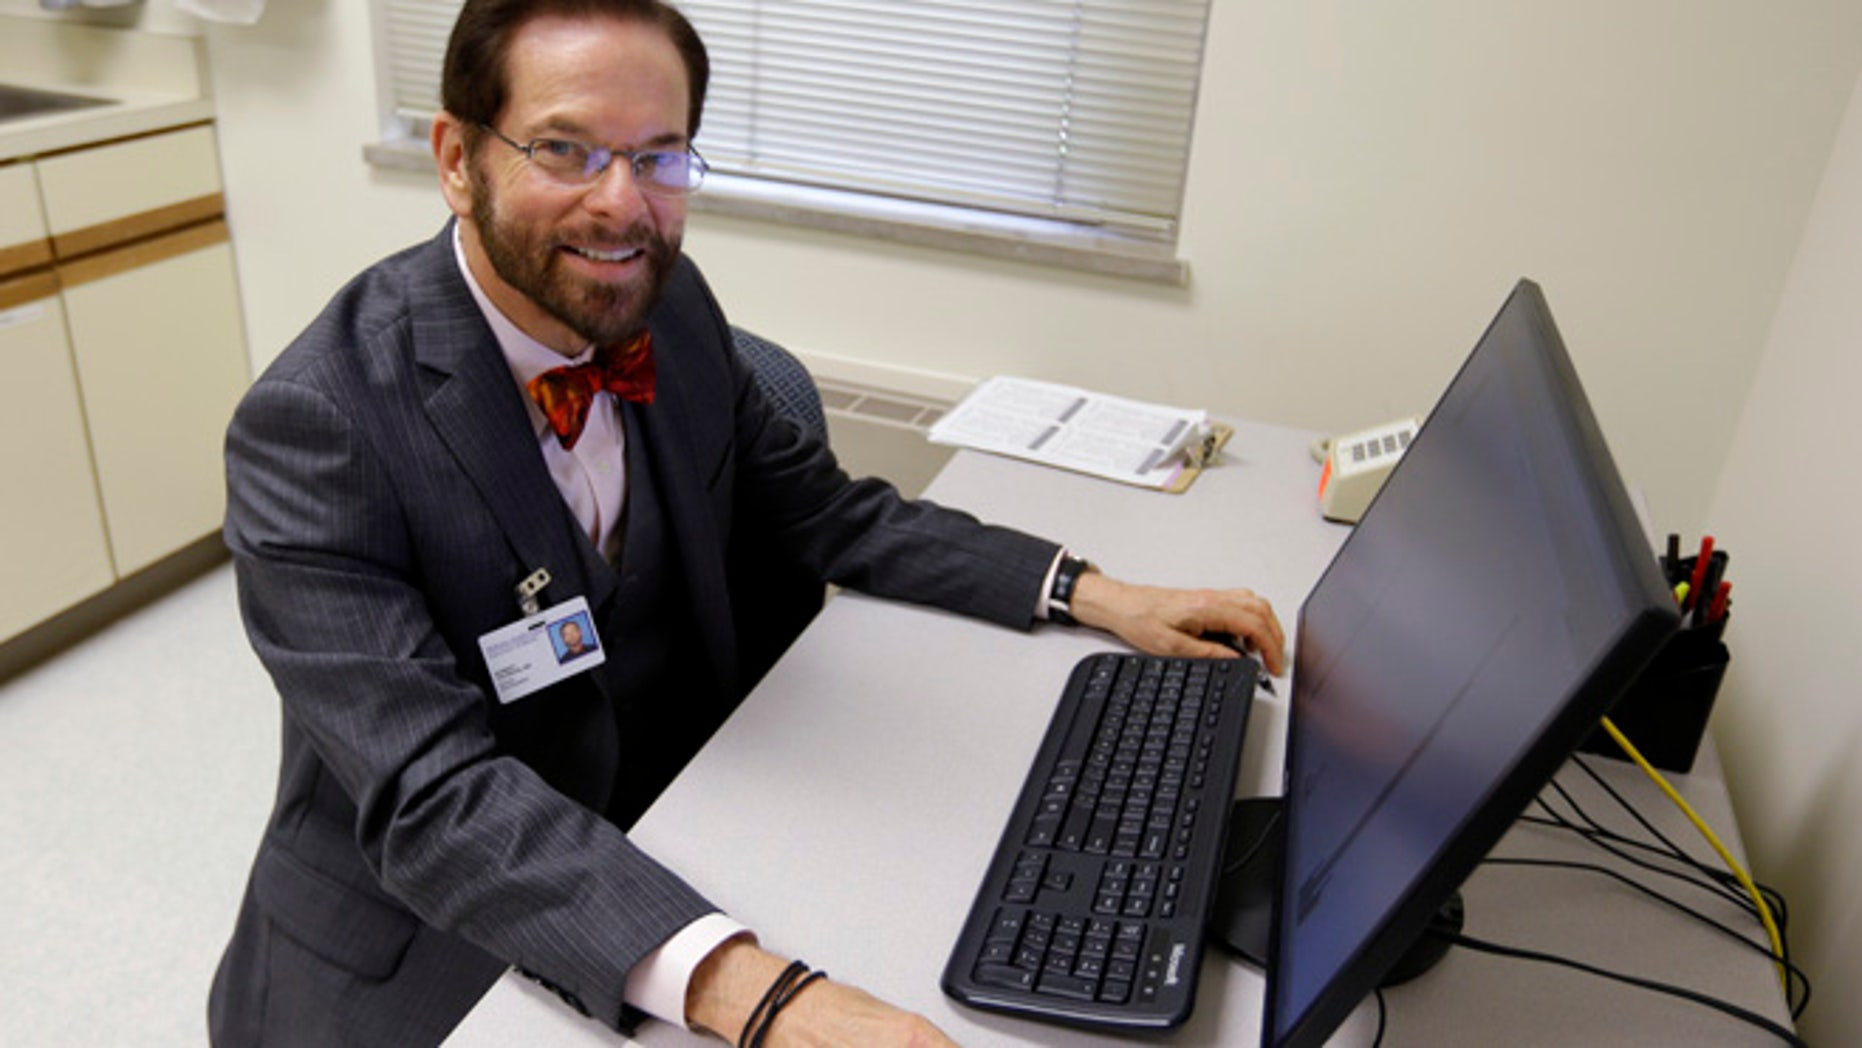 Aug 21, 2014: Dr. Robert Palinkas, director of the McKinley Health Center at the University of Illinois, poses in an exam room in Urbana, Ill. (AP)